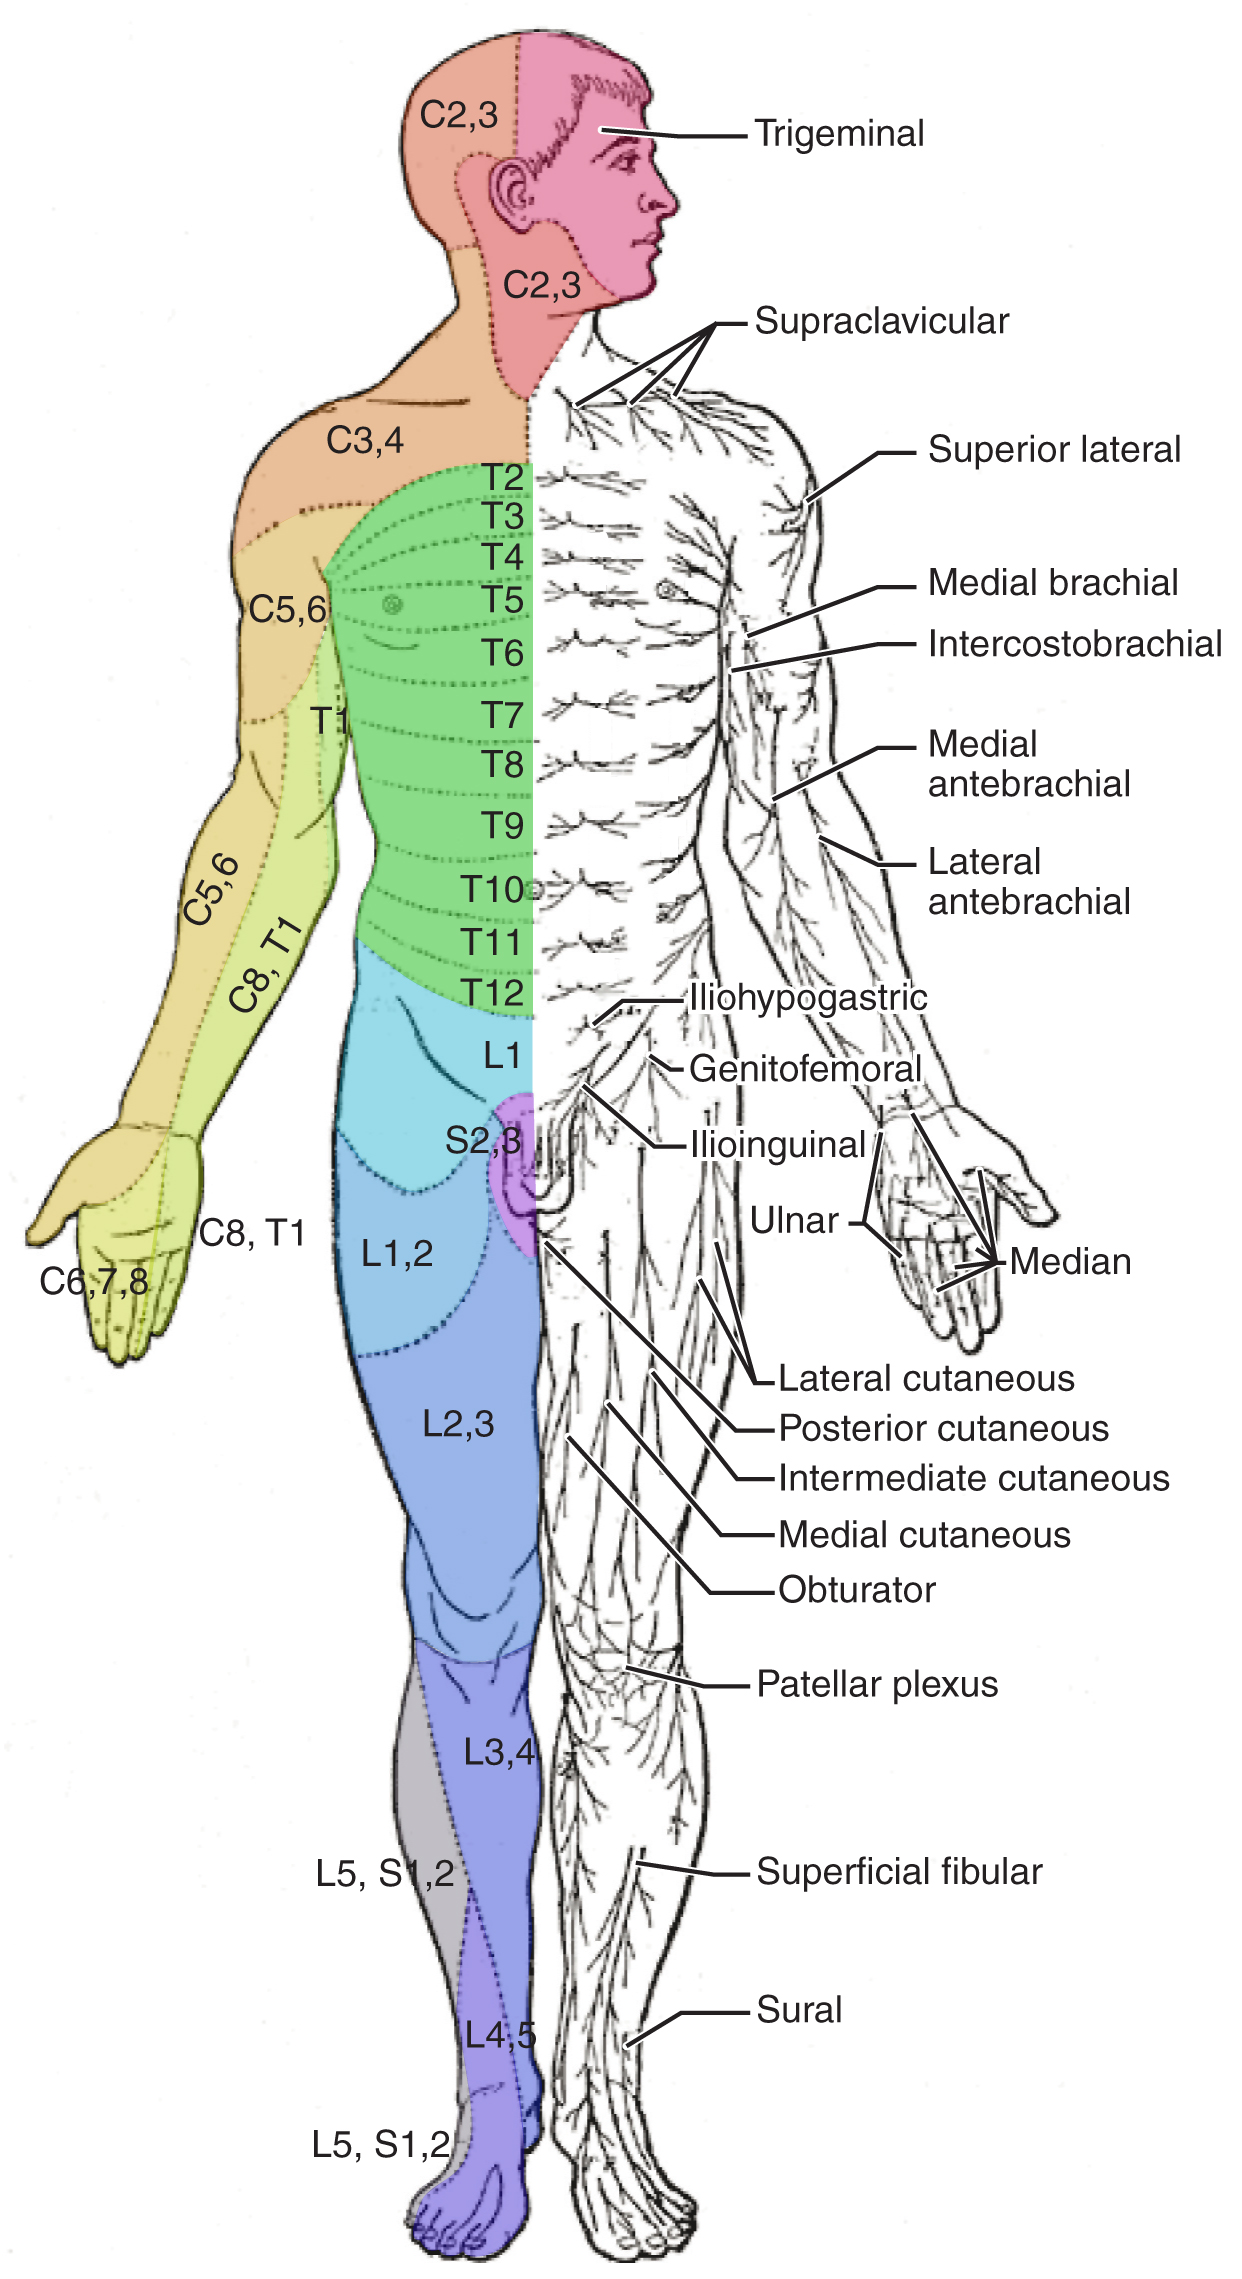 Both panels in this image show the front view of a human body. The left image shows different regions in different colors. In both images, different parts are labeled.